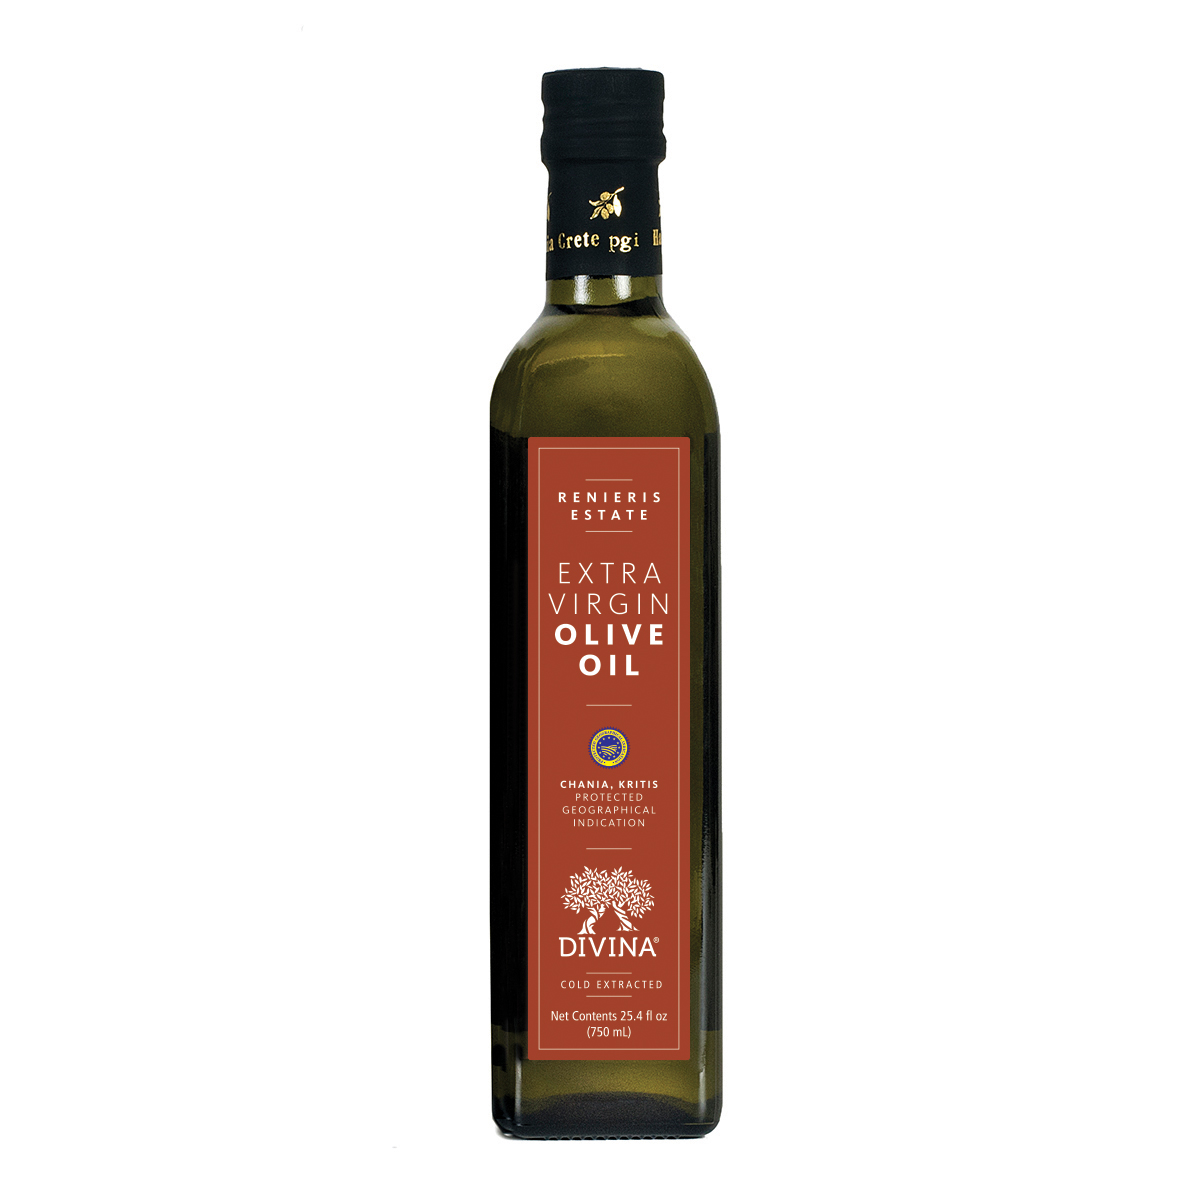 00163 - Renieris Estate Extra Virgin Olive Oil